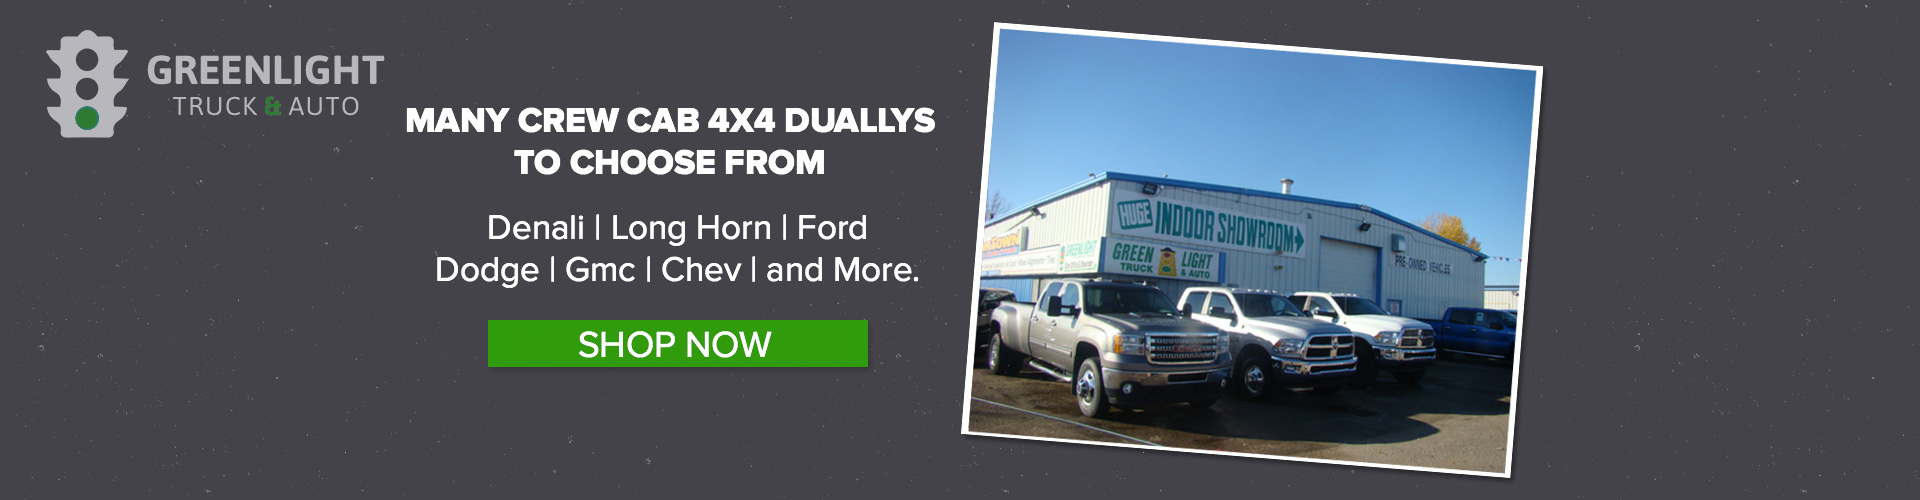 Image of 4x4 Dually vehicles